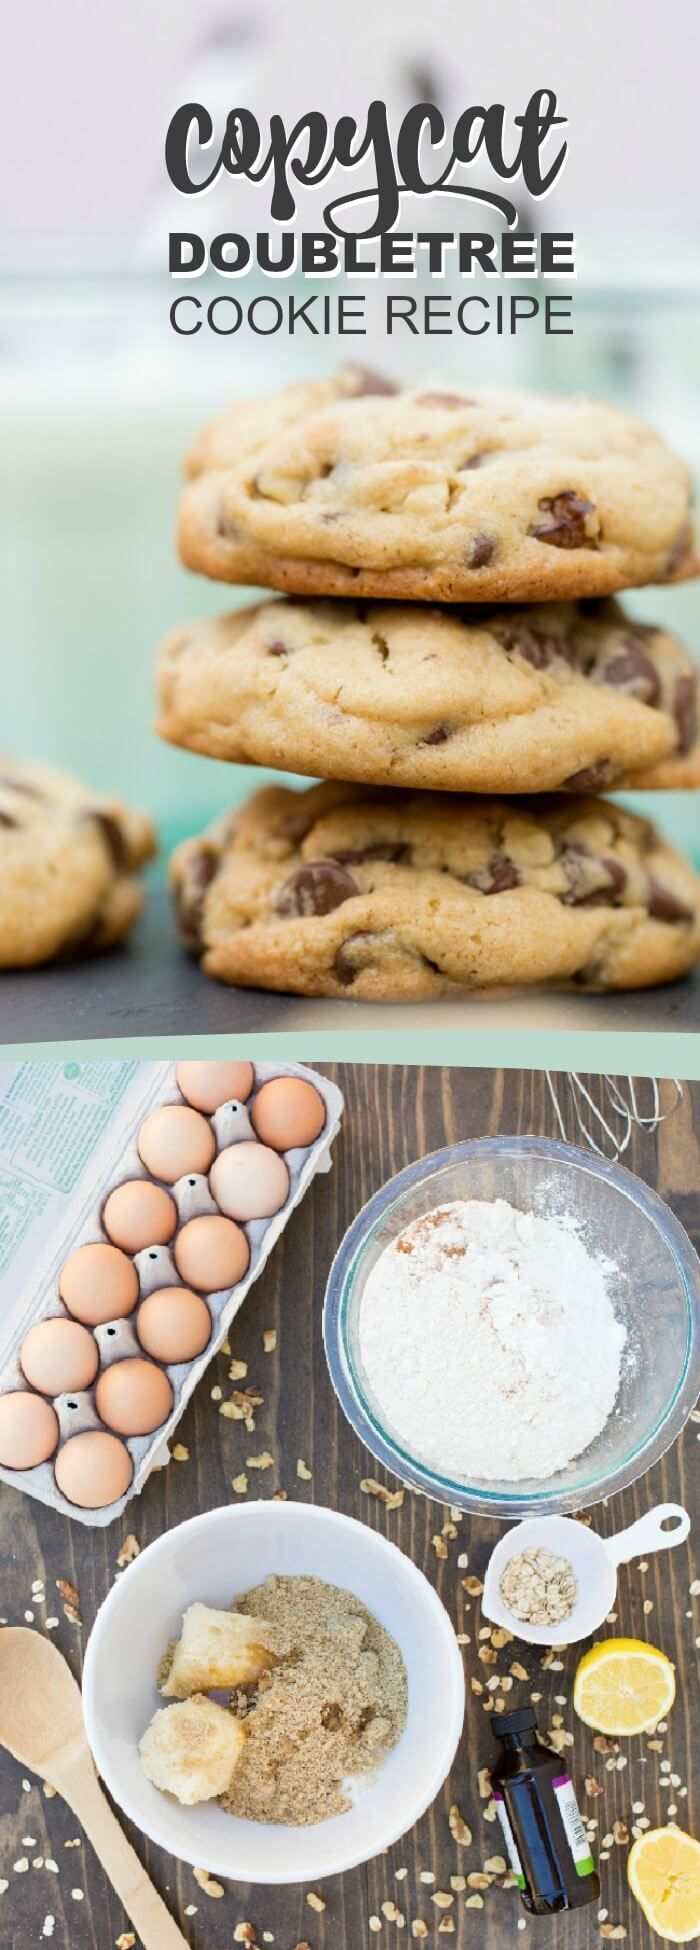 Best doubletree cookie recipe - copycat of the famous cookie recipe from Hilton Doubletree hotels via @spaceshipslb(Best Chocolate Muffins)